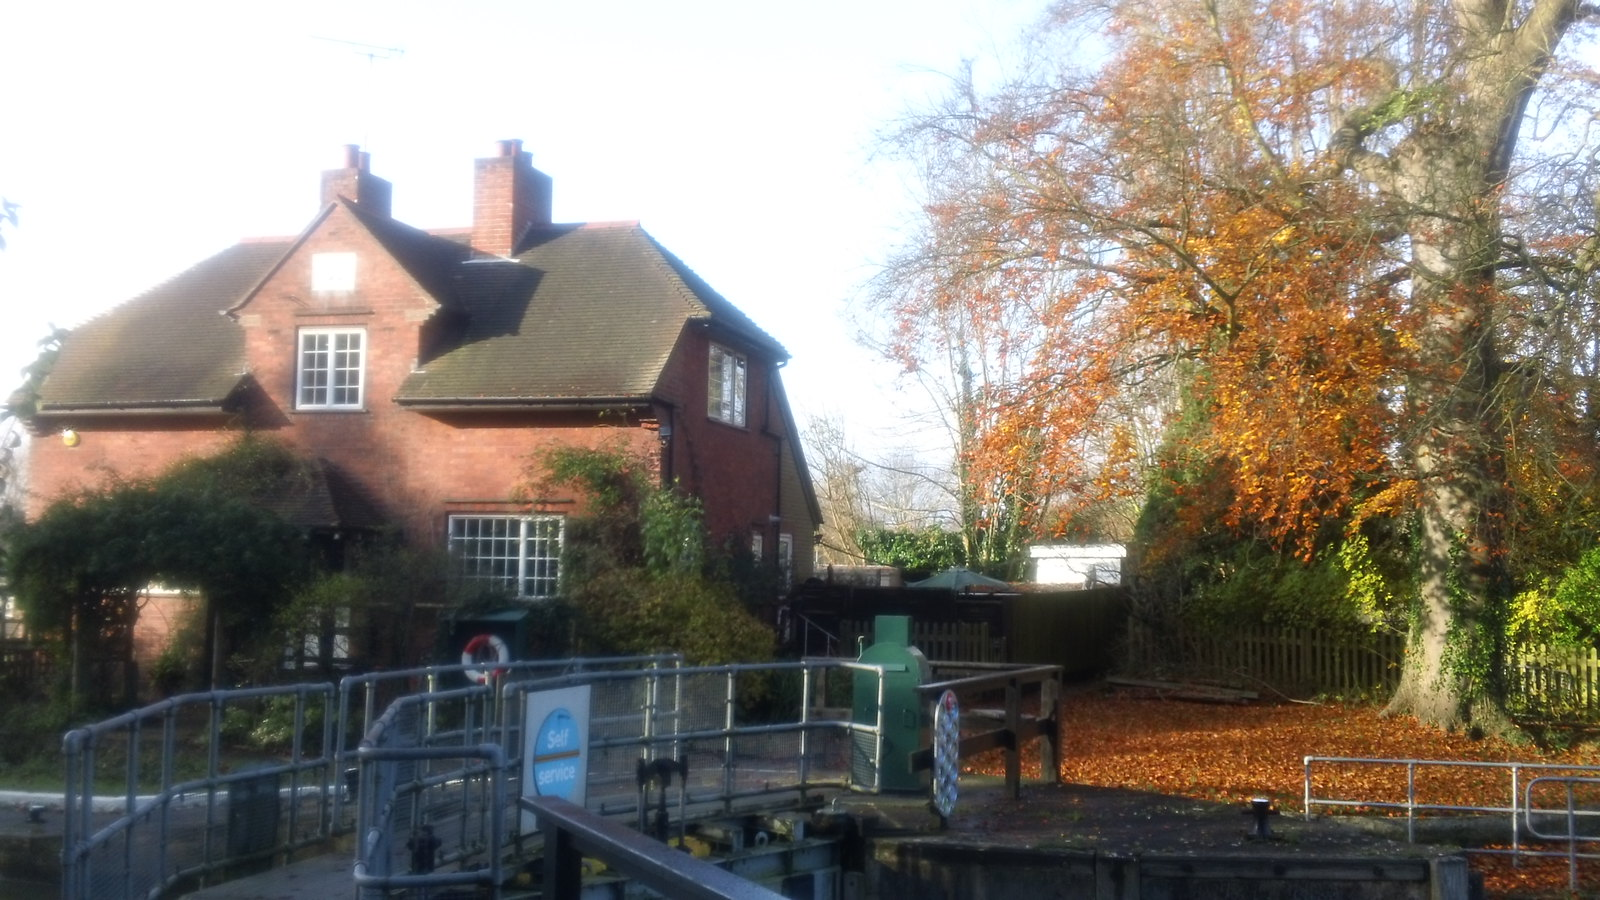 Sonning Lock in late Autumn